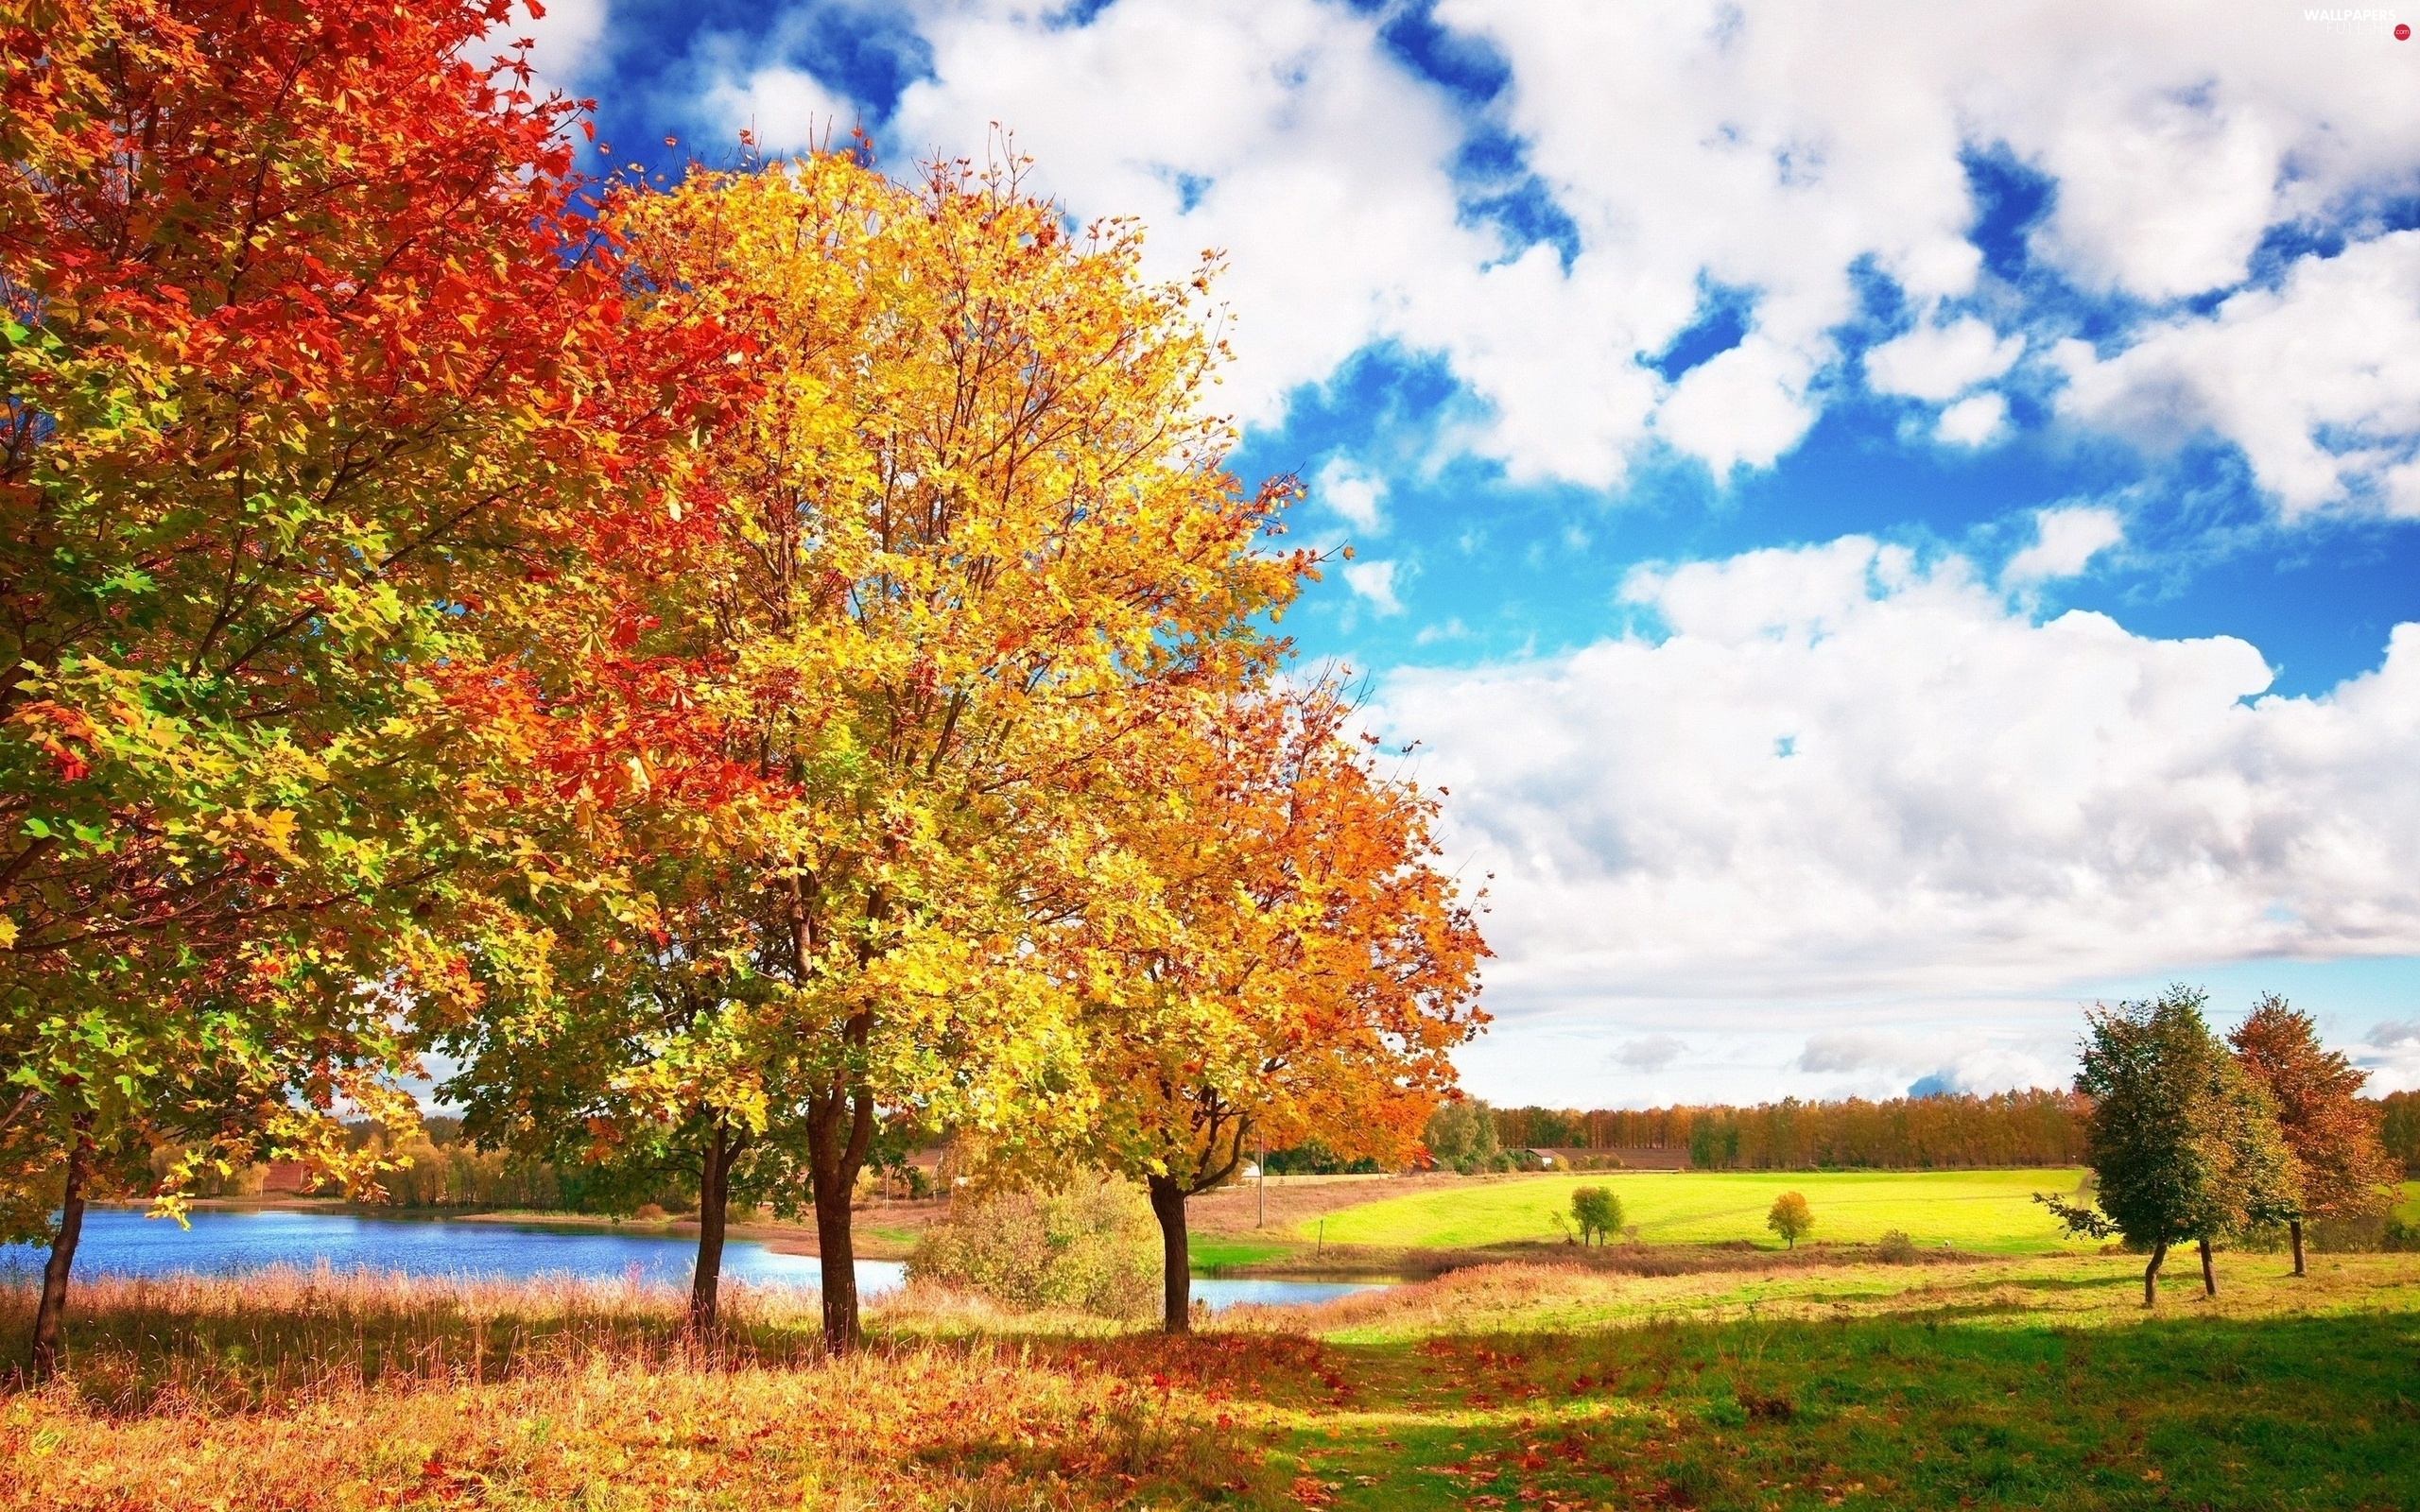 trees, lake, clouds, autumn, viewes, medows